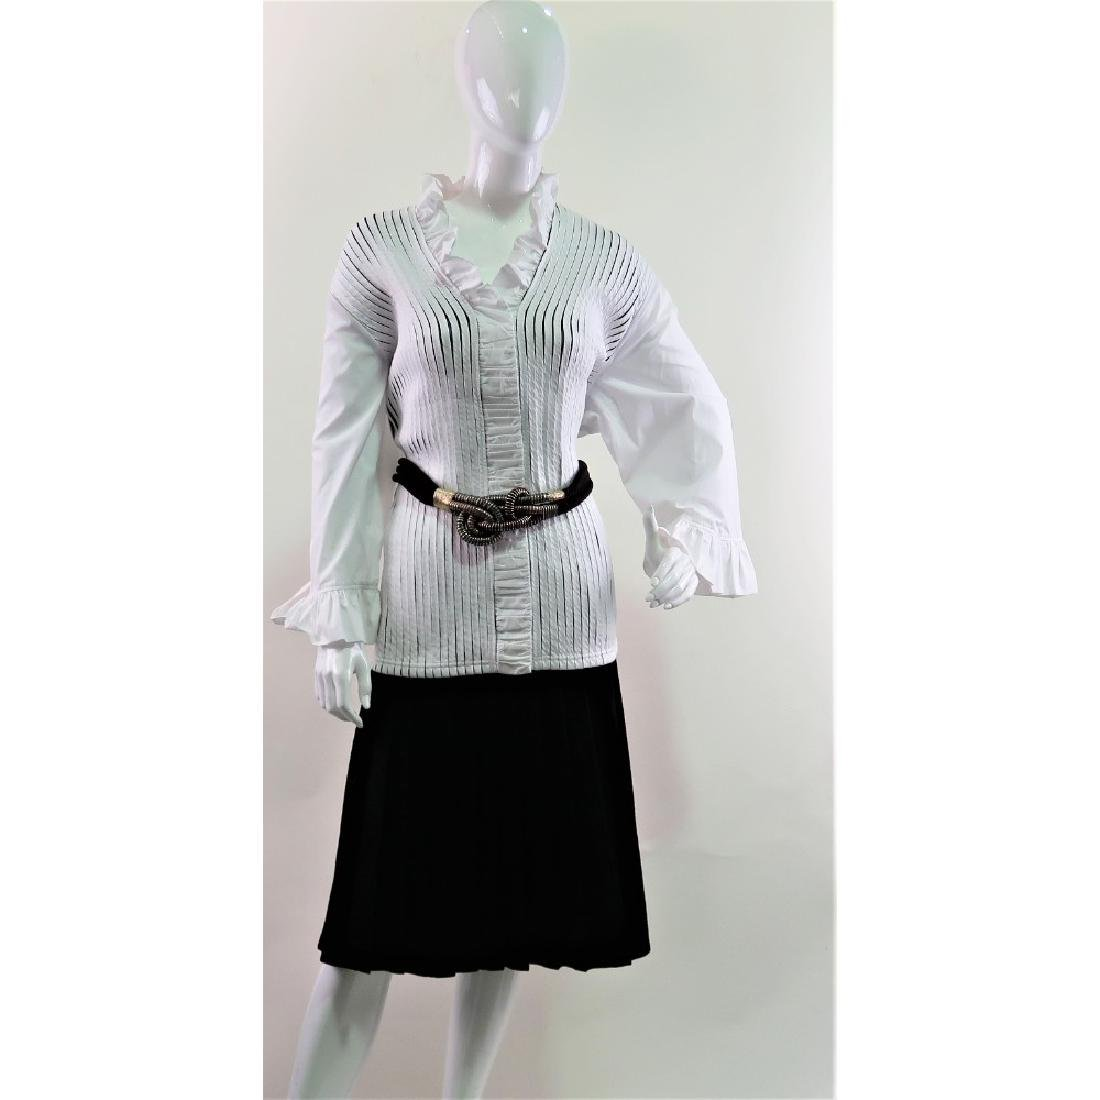 Lesley Gore's White Ruffle Ravel button up Blouse.